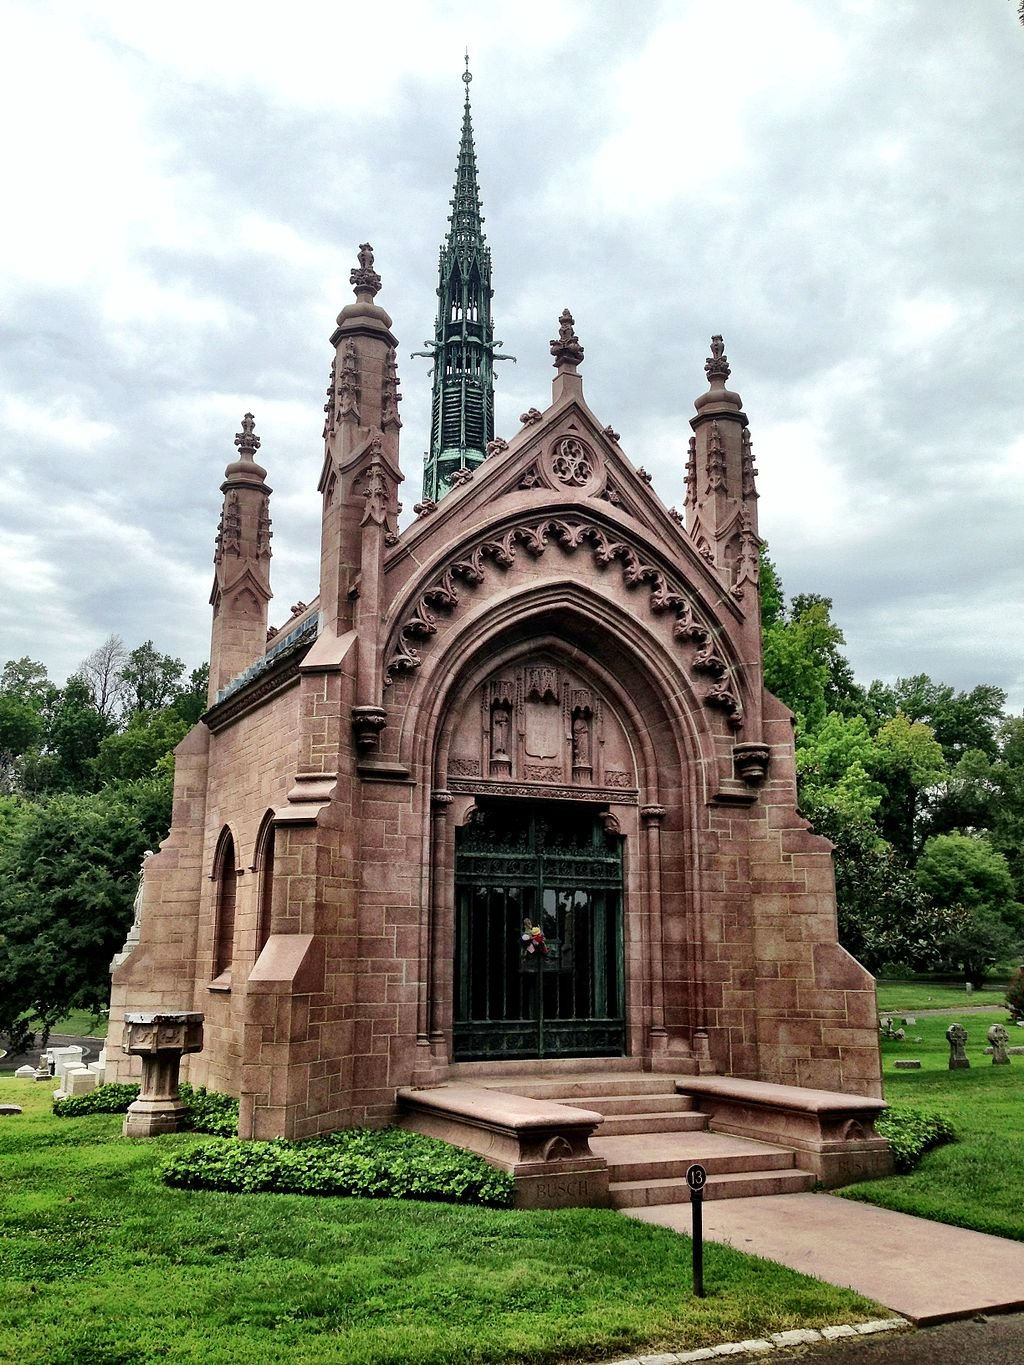 The Busch Mausoleum is one of several large elaborate tombs in the cemetery.